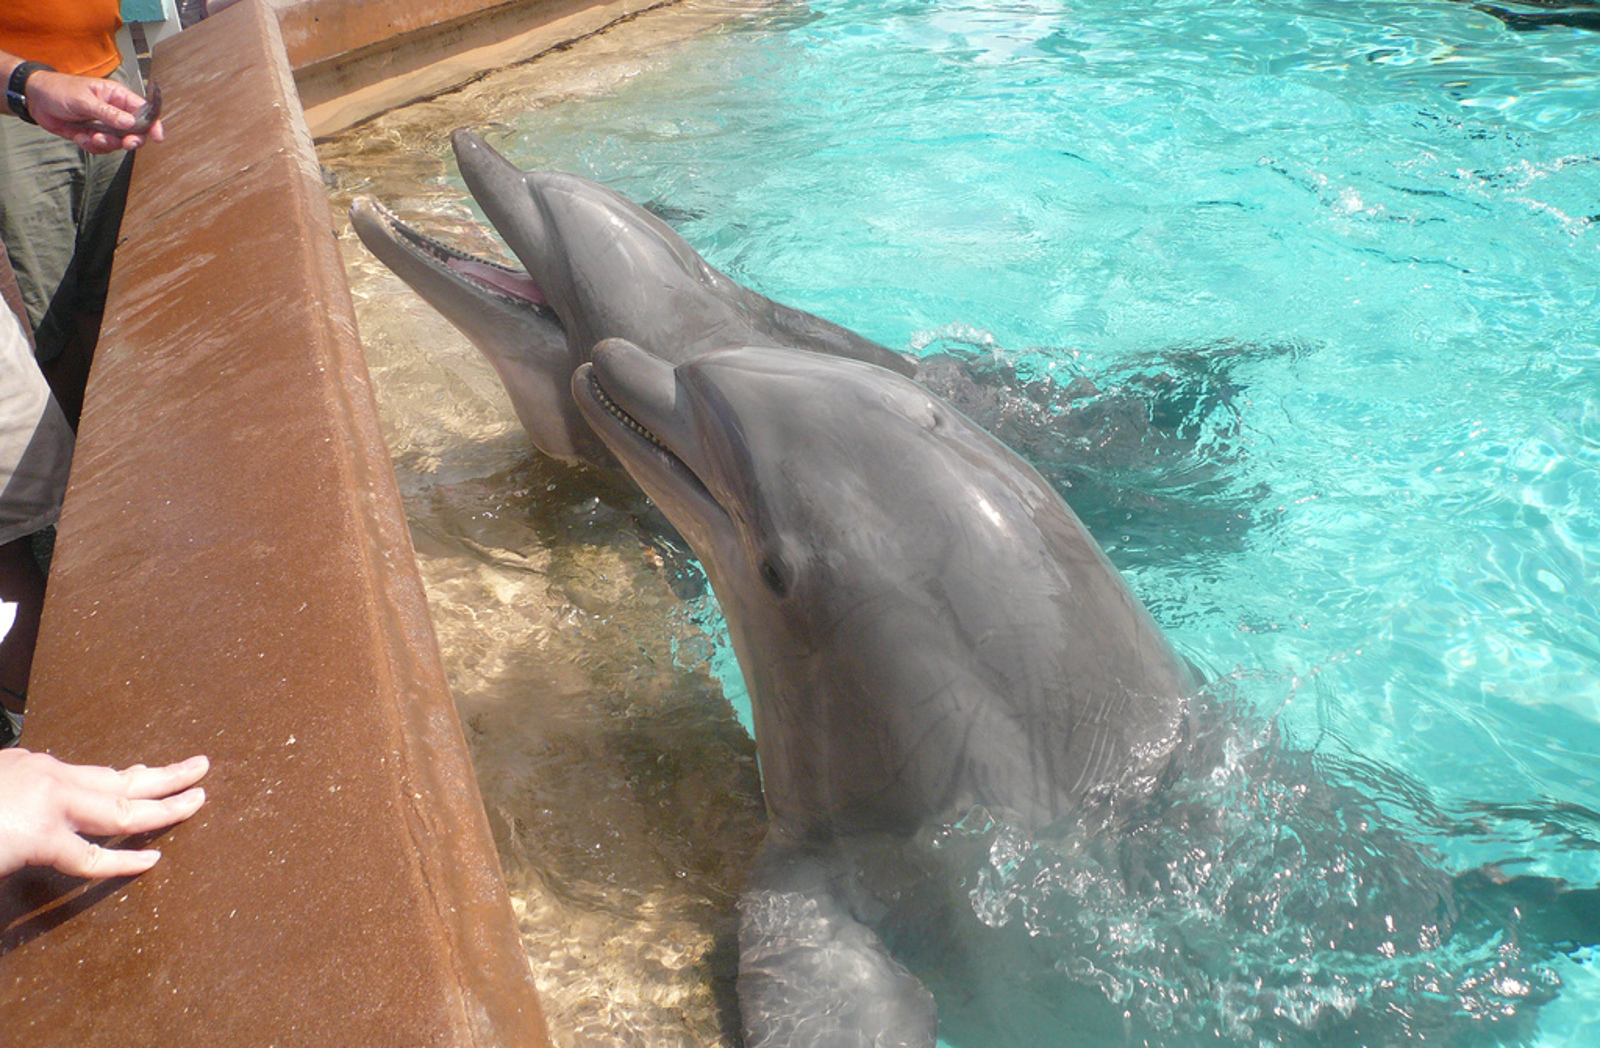 do dolphins have healing abilities or is dolphin therapy just